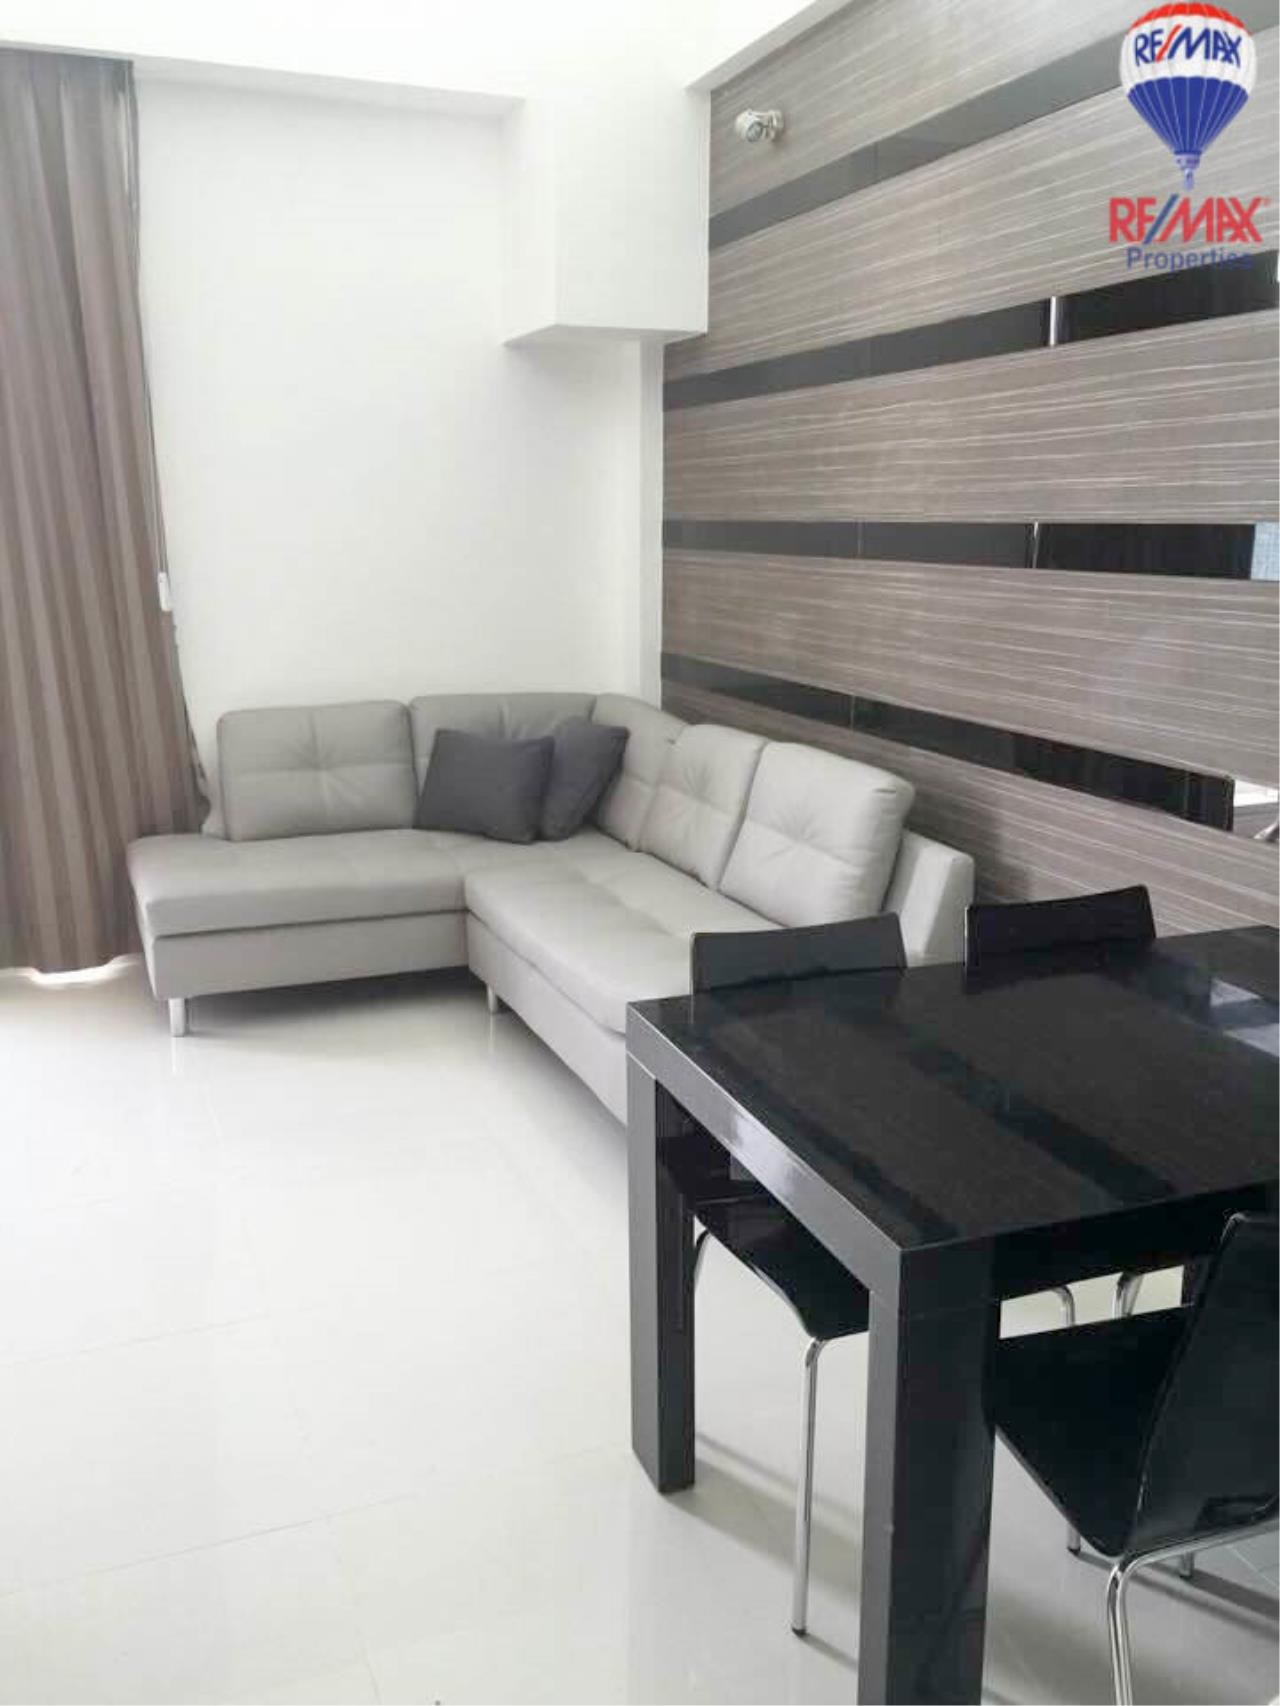 RE/MAX Properties Agency's 2 Bedrooms Duplex style for rent at The Trendy condo 6